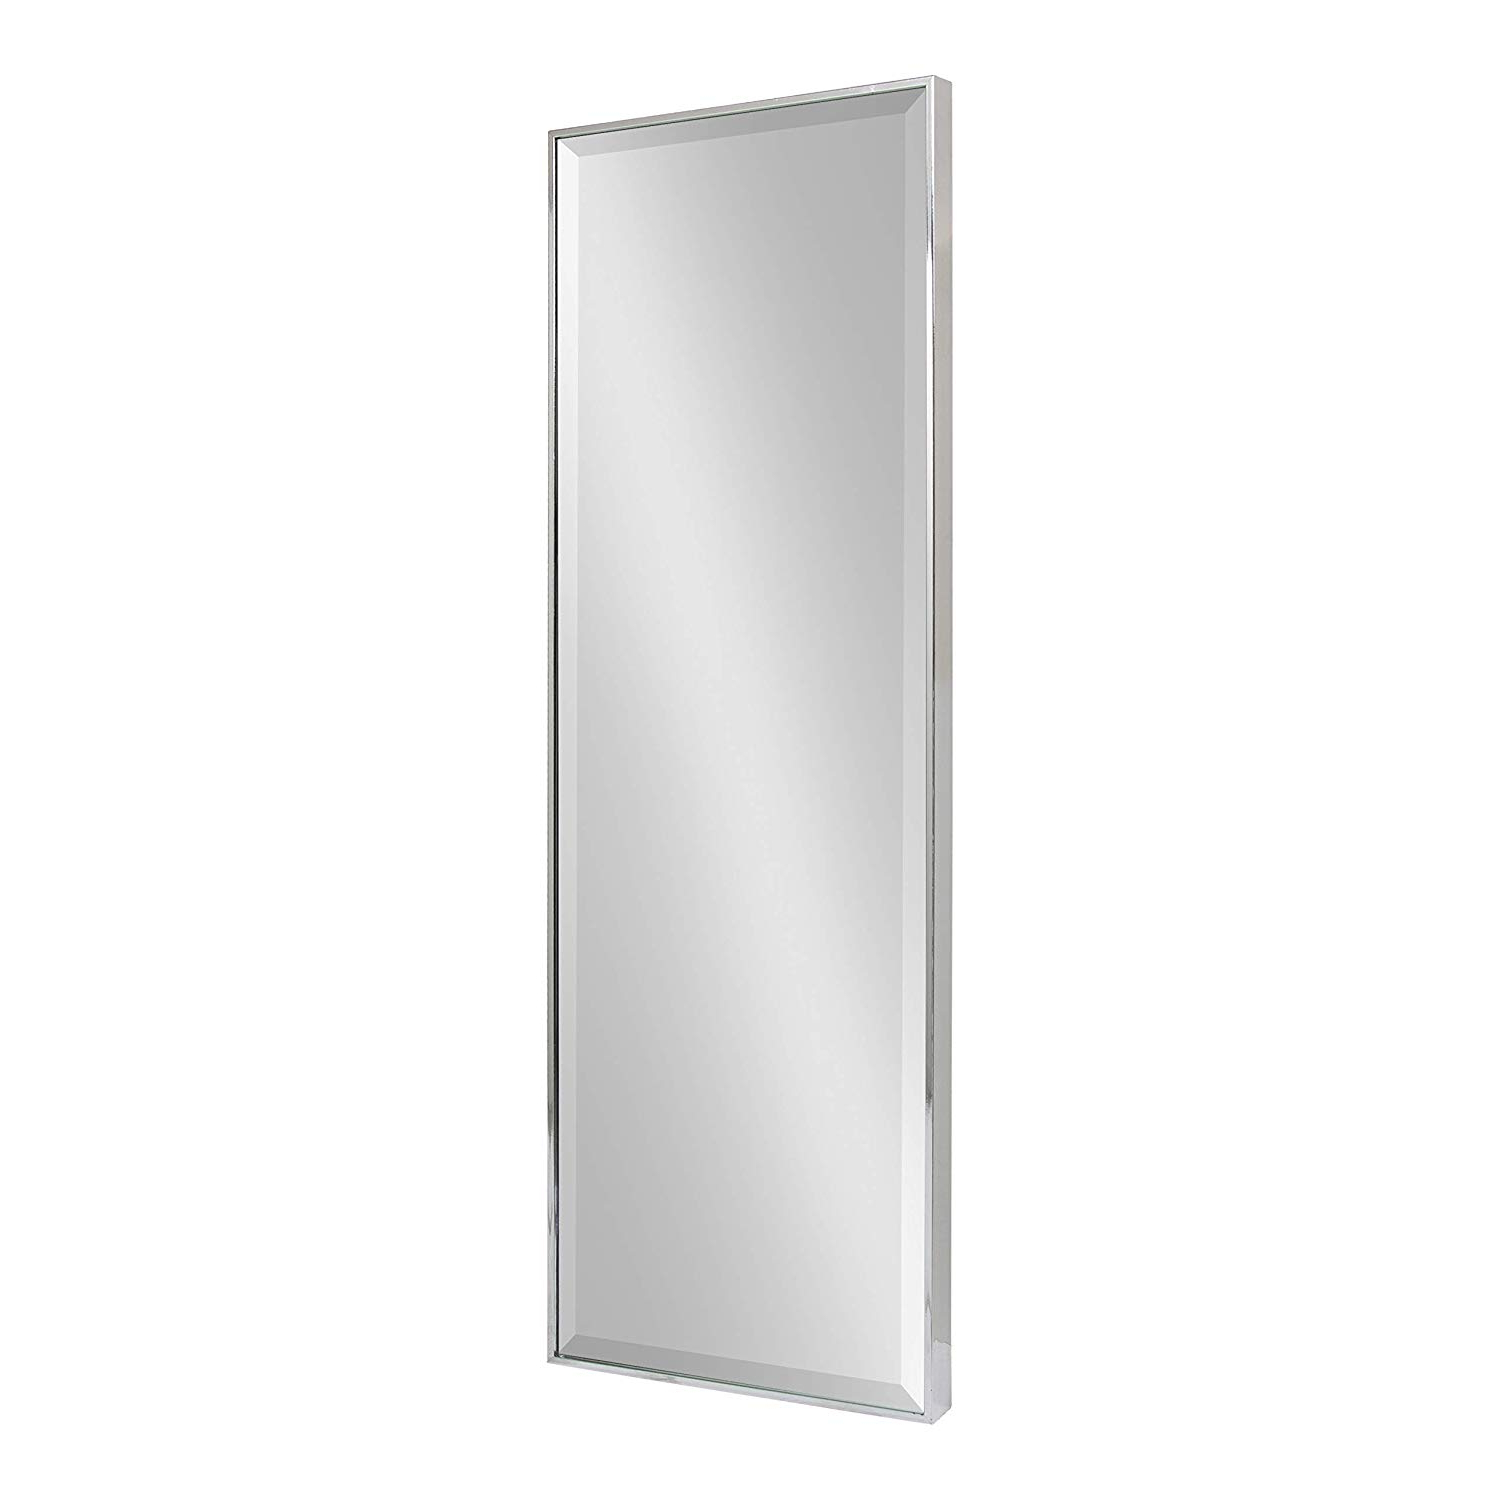 Widely Used Kate And Laurel Rhodes Decorative Frame Full Length Wall Mirror,  16.75X48.75. Silver For Decorative Full Length Wall Mirrors (Gallery 10 of 20)